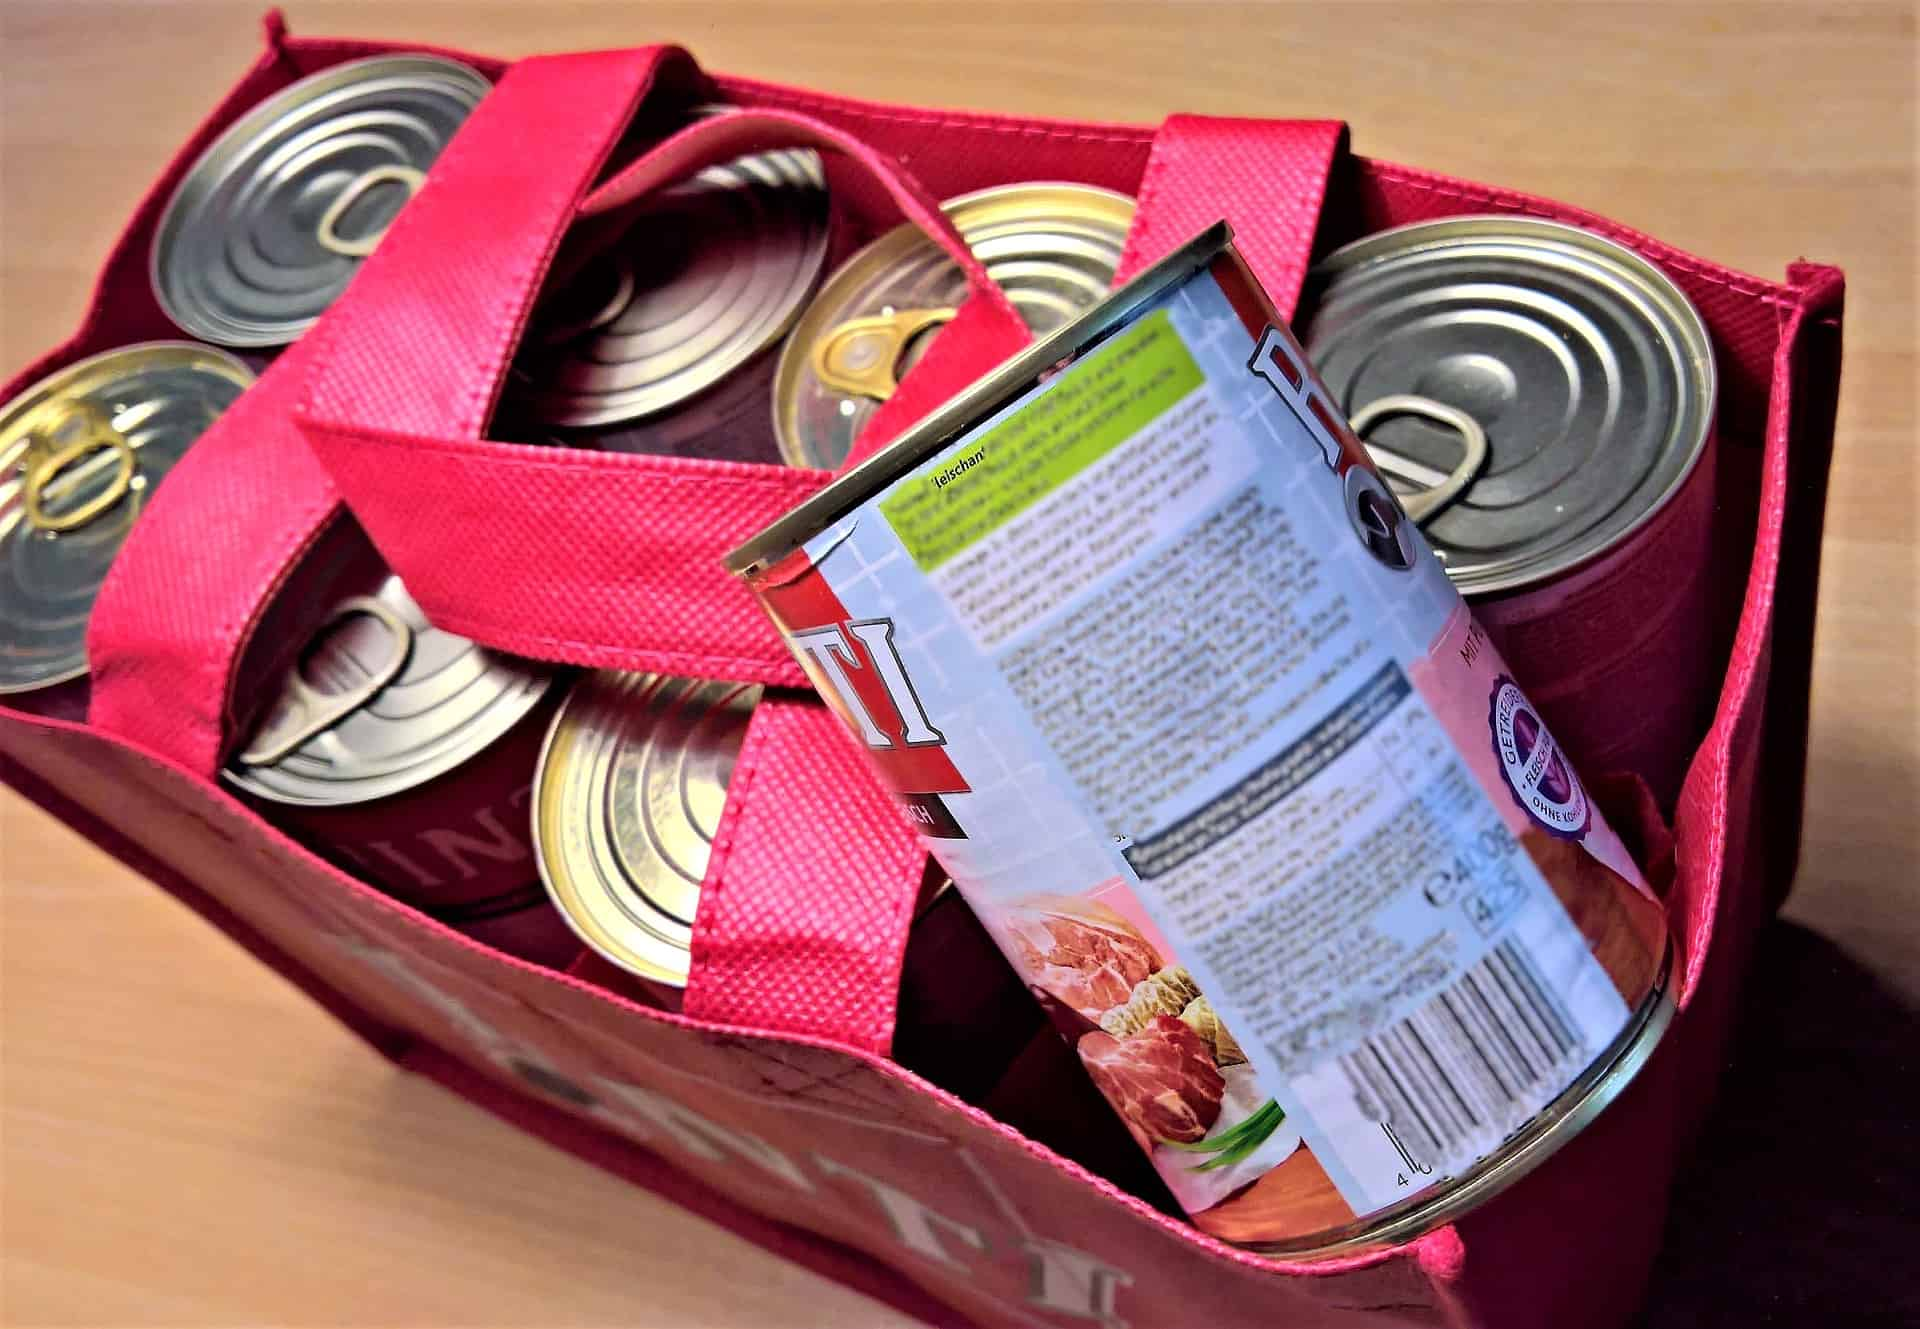 Items You Should Never Buy from the Dollar Store - Canned Food